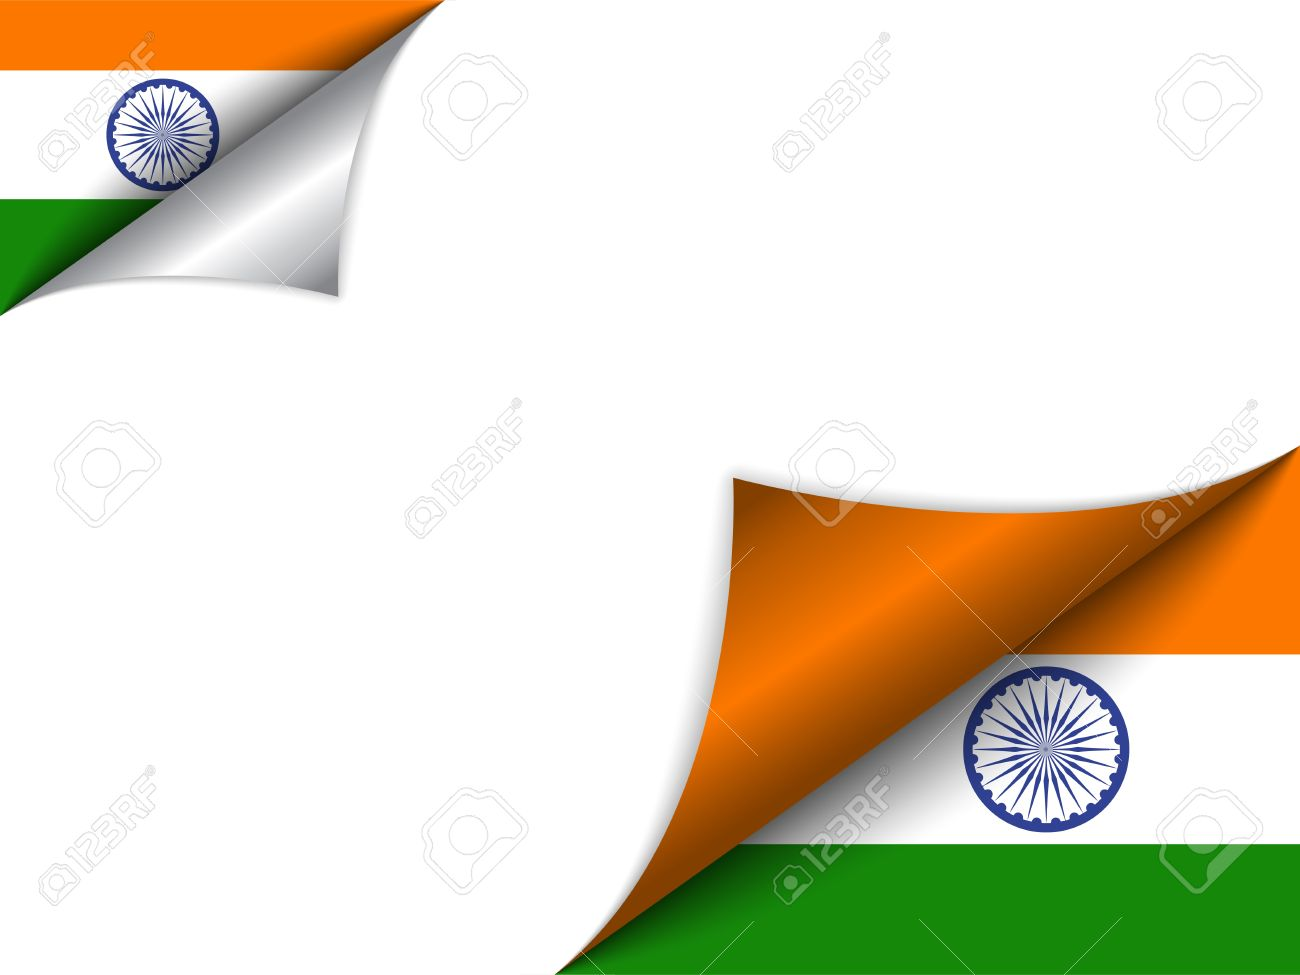 india country flag turning page royalty free cliparts vectors and